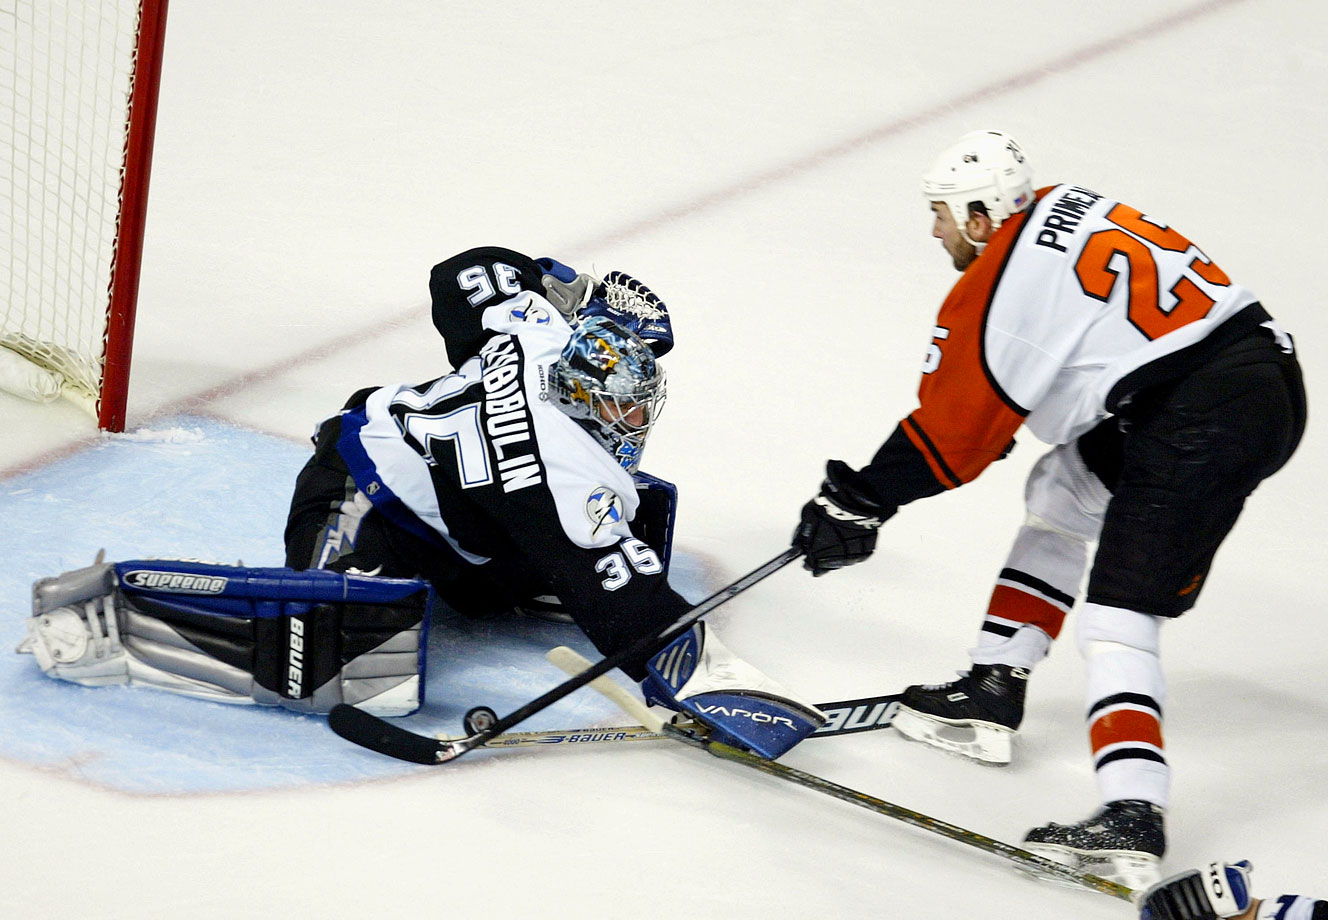 Clinging to a one-goal lead, Nikolai Khabibulin stopped Keith Primeau on a second-period breakaway and the Lightning hung on to win their first Game 7 and advance to their first Stanley Cup Final. Former Flyer Ruslan Fedotenko scored a deflected power-play goal at 16:46 of the first period and Frederik Modin netted the winner at 4:57 of the second.